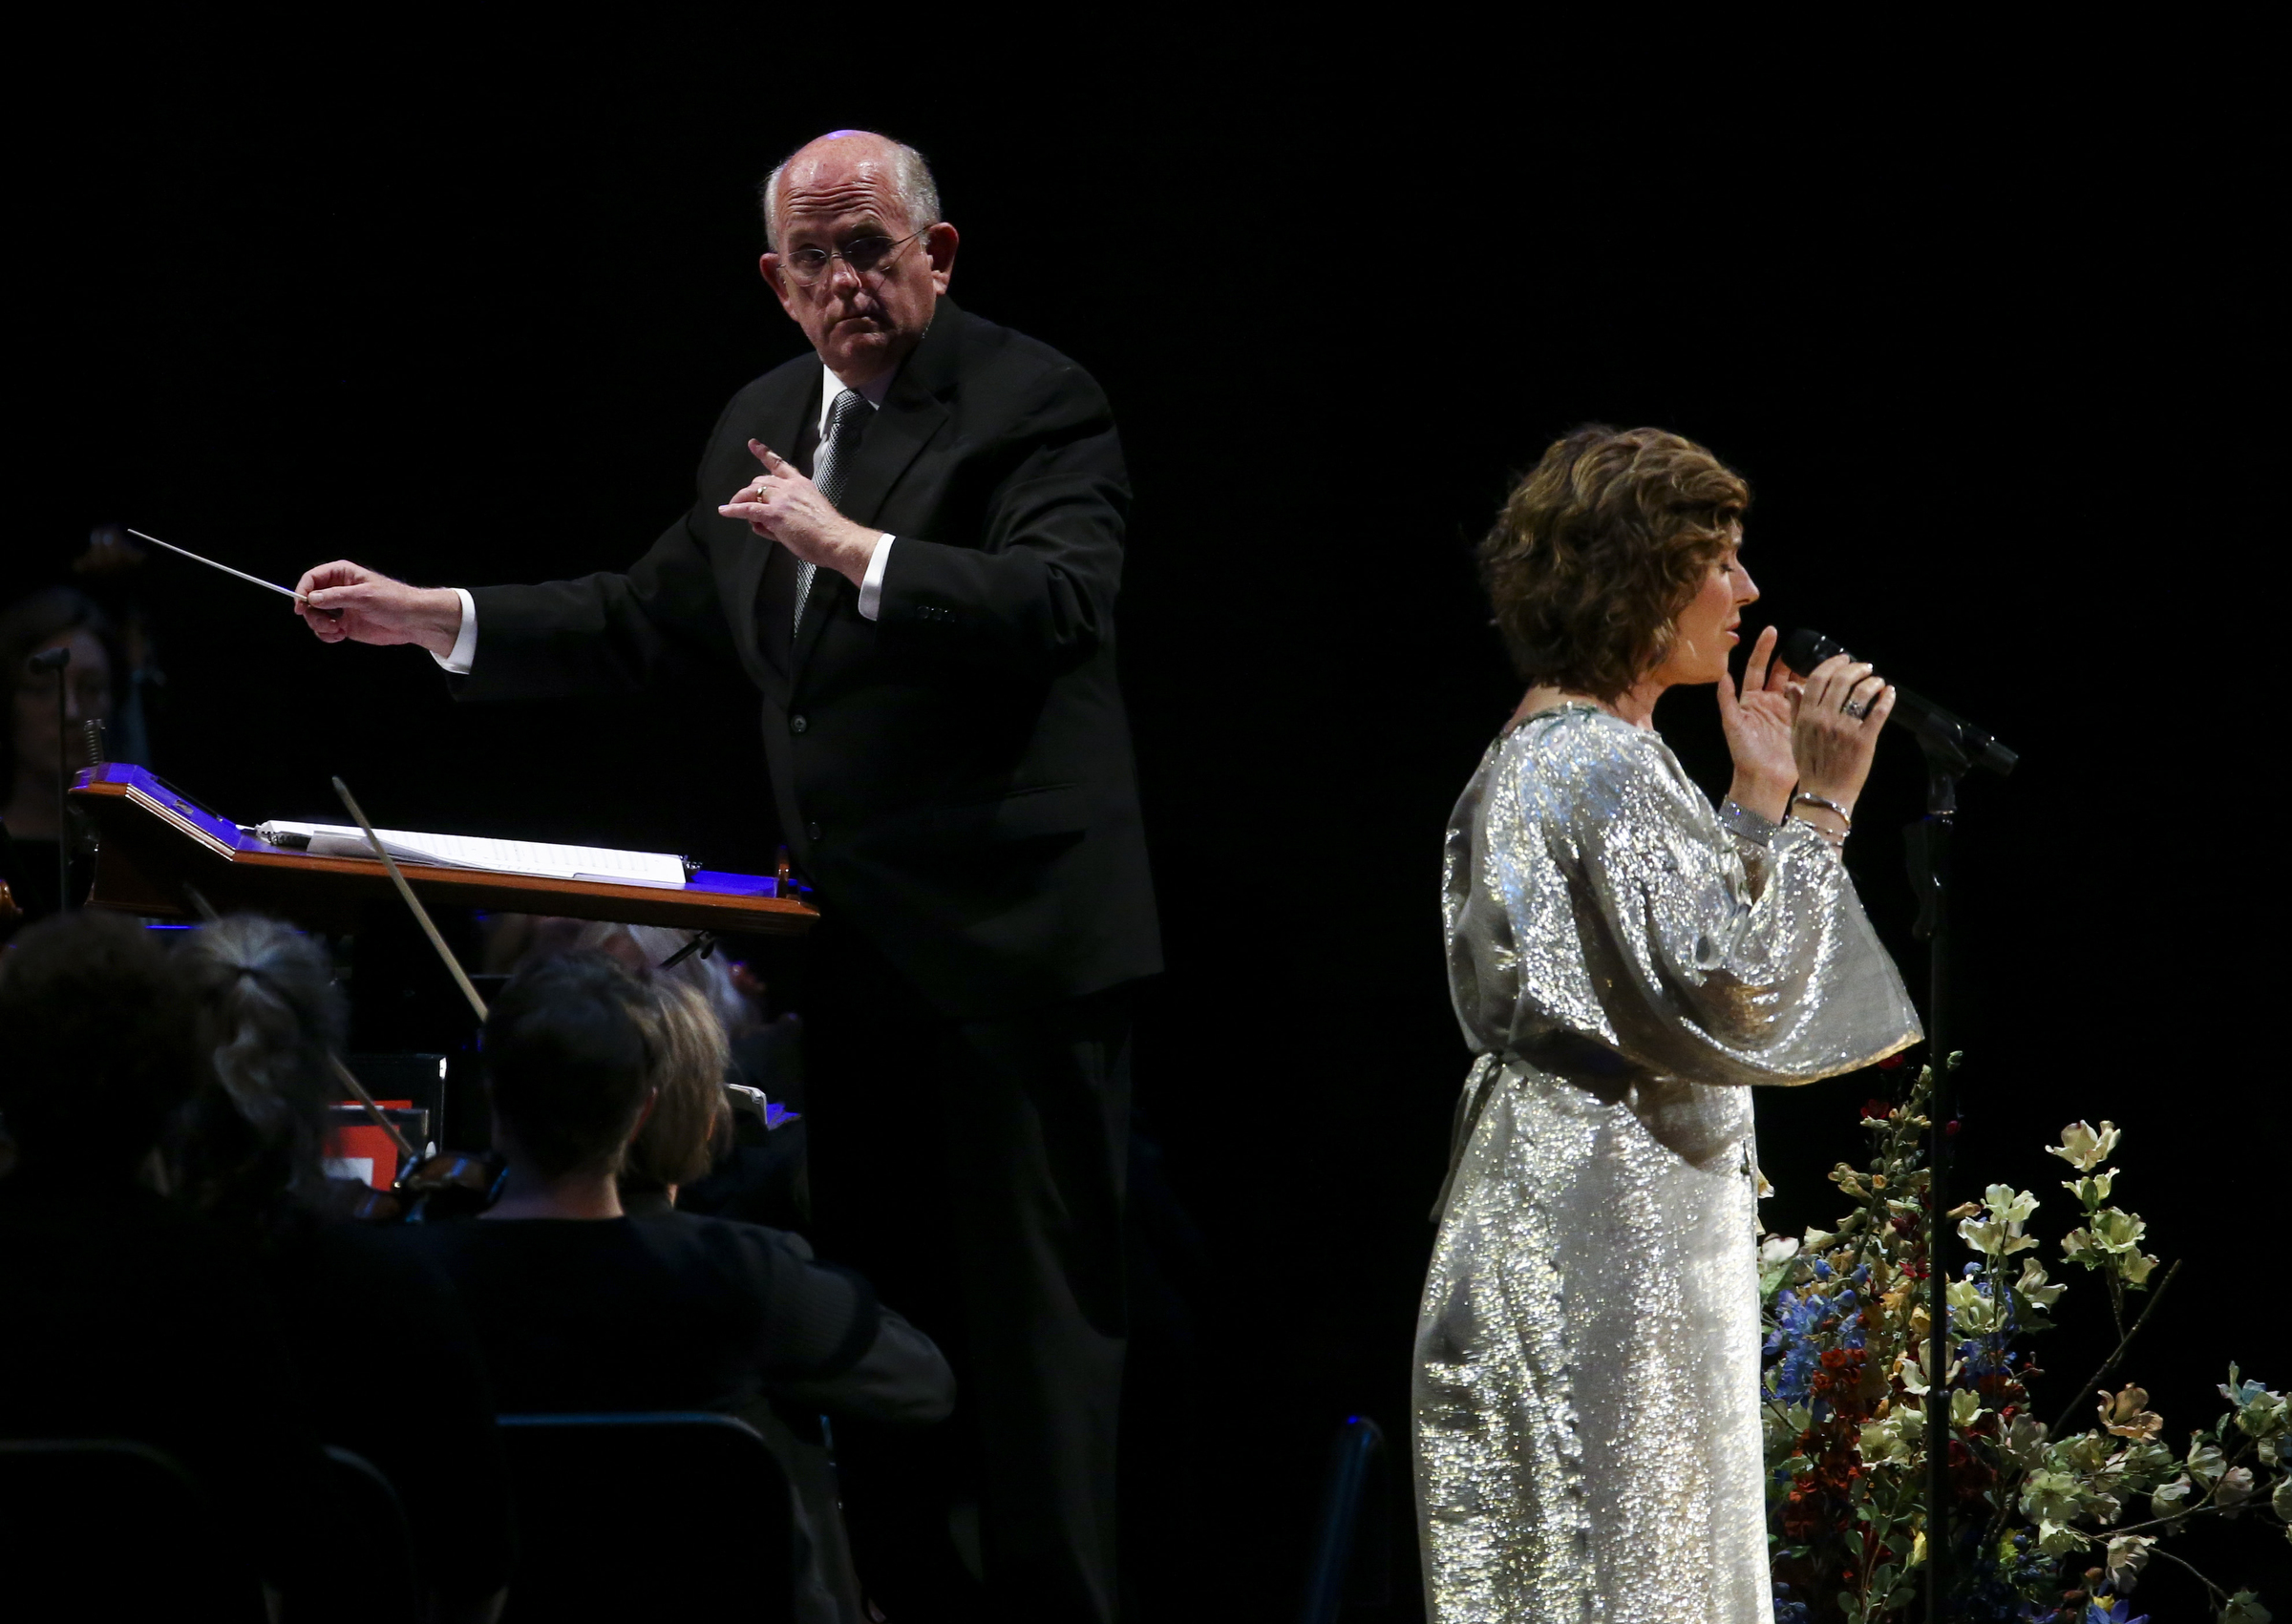 Conductor Mack Wilberg looks back at special guest Sissel as she sings with the Tabernacle Choir and Orchestra at Temple Square during the Pioneer Day concert at the Conference Center in Salt Lake City on Friday, July 19, 2019.